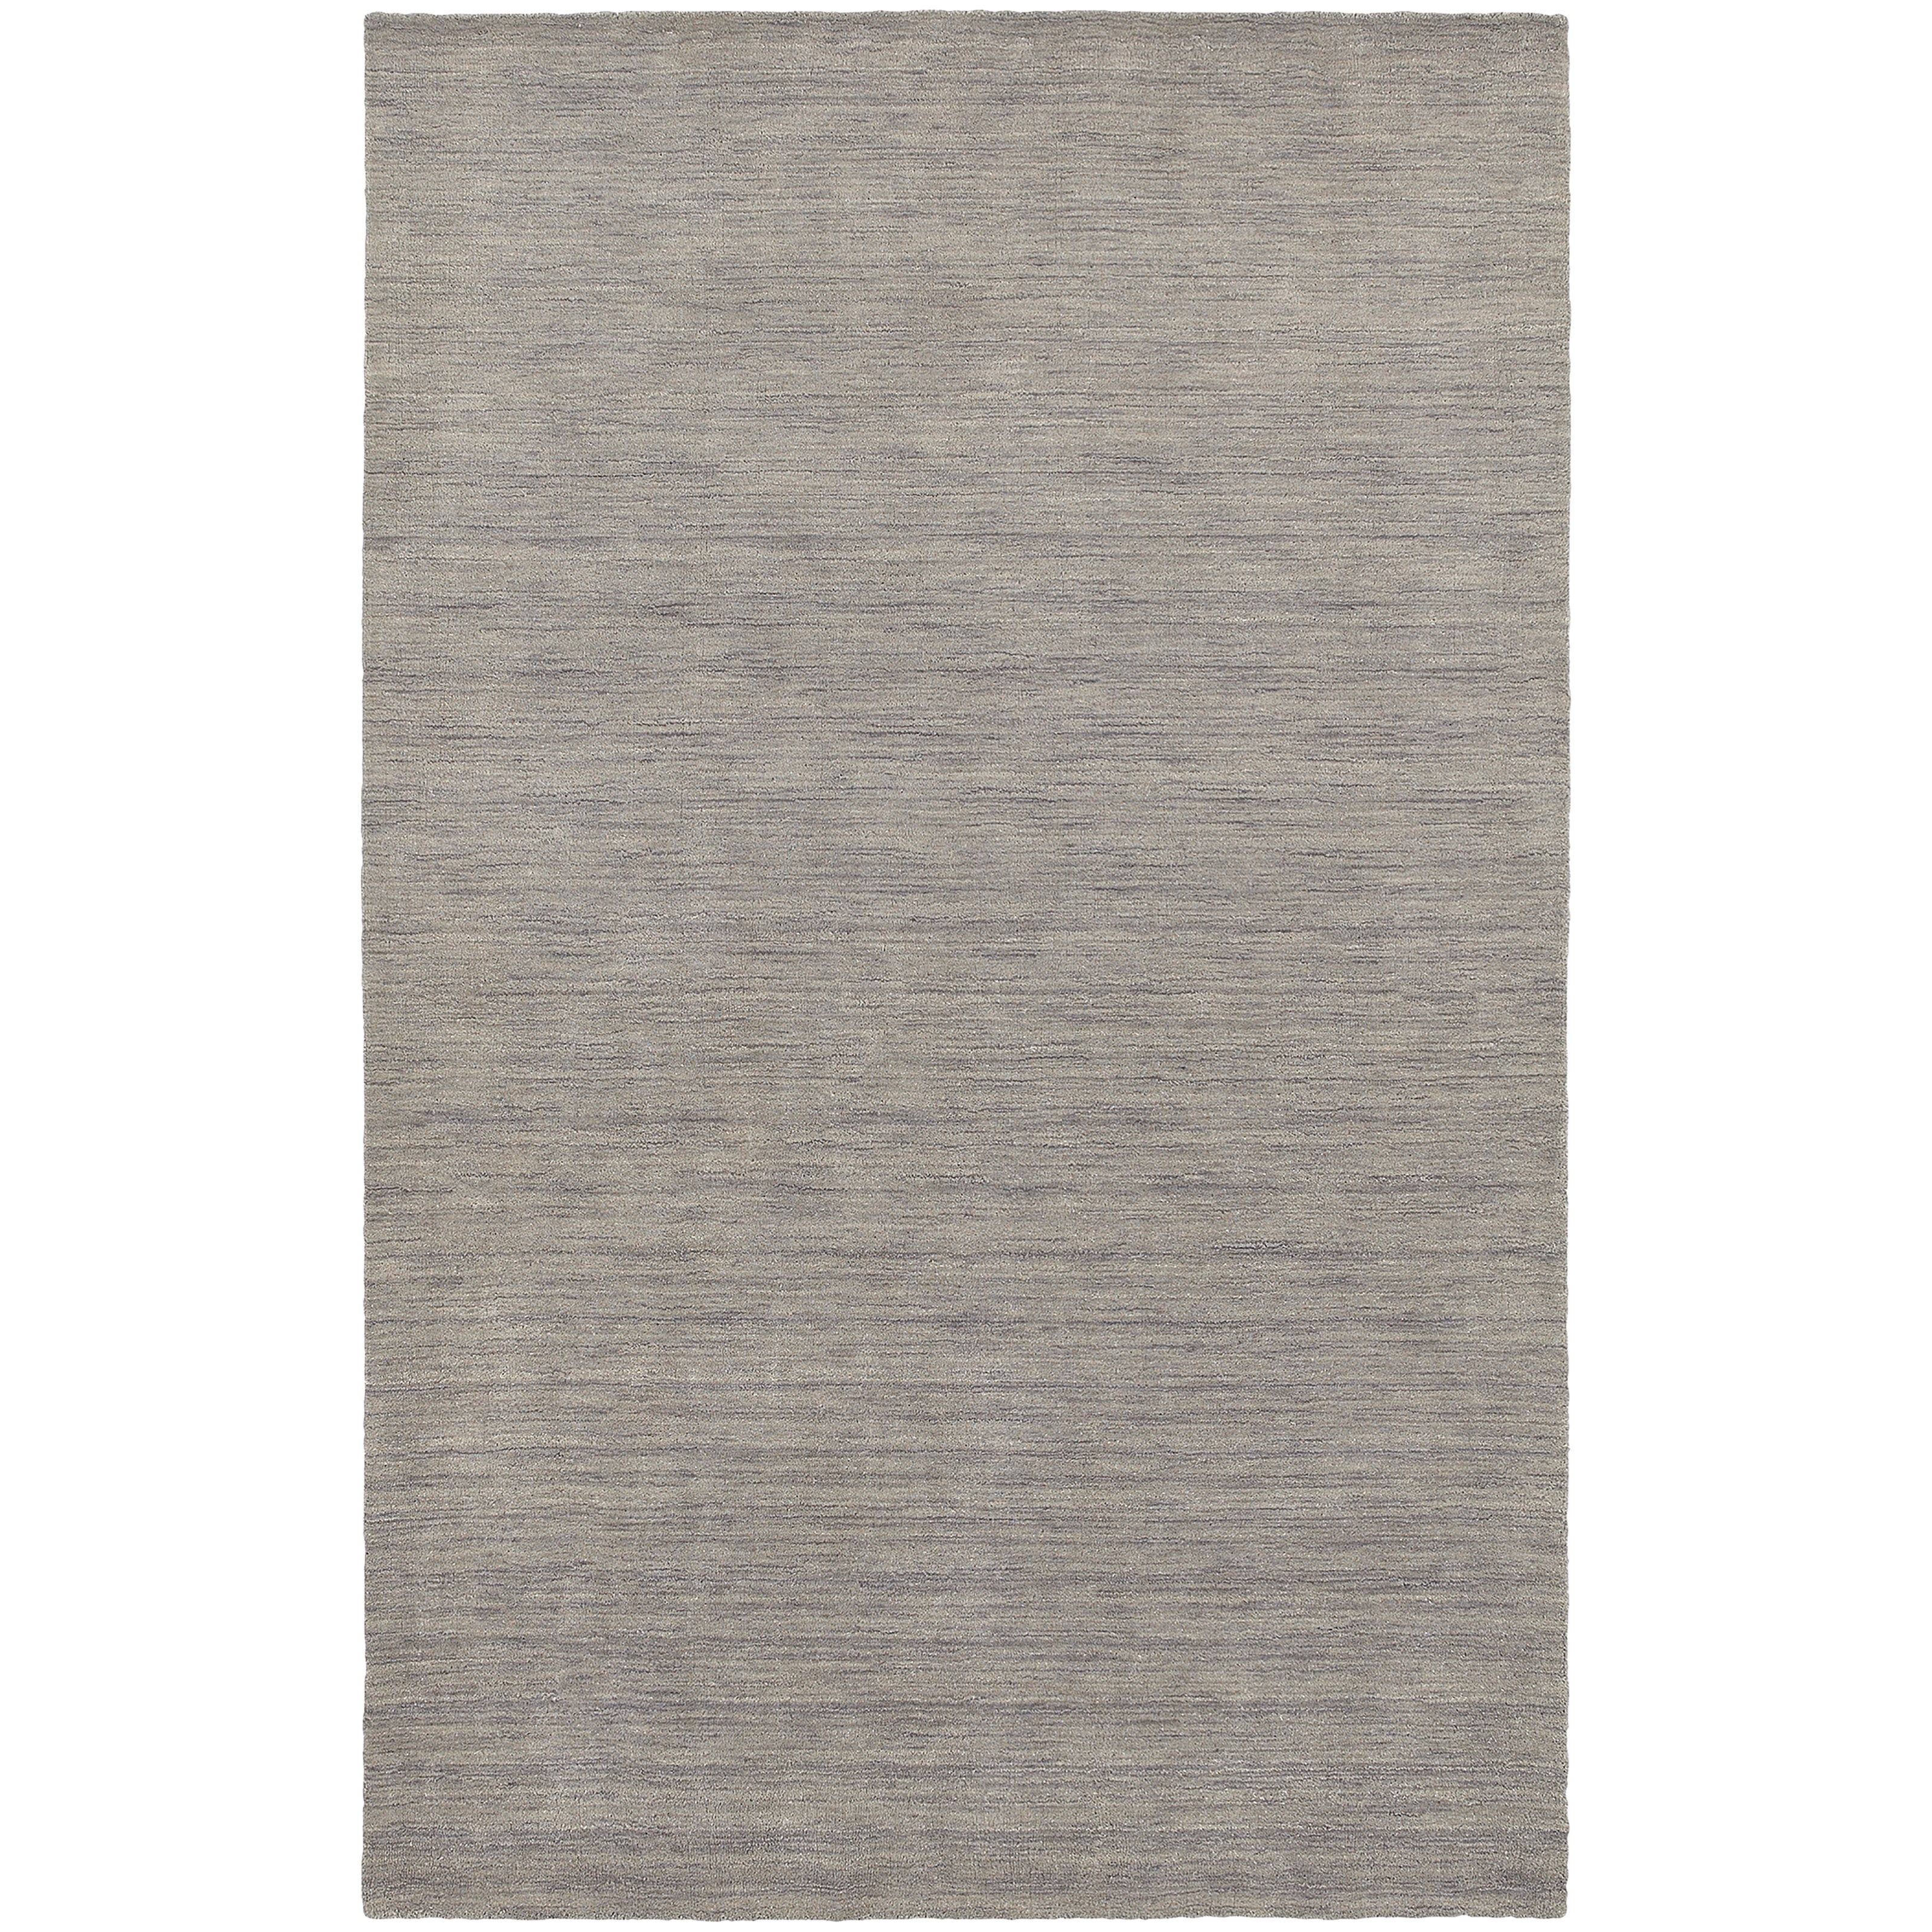 Barrientos Handmade Tufted Wool Gray Area Rug Reviews Joss Main